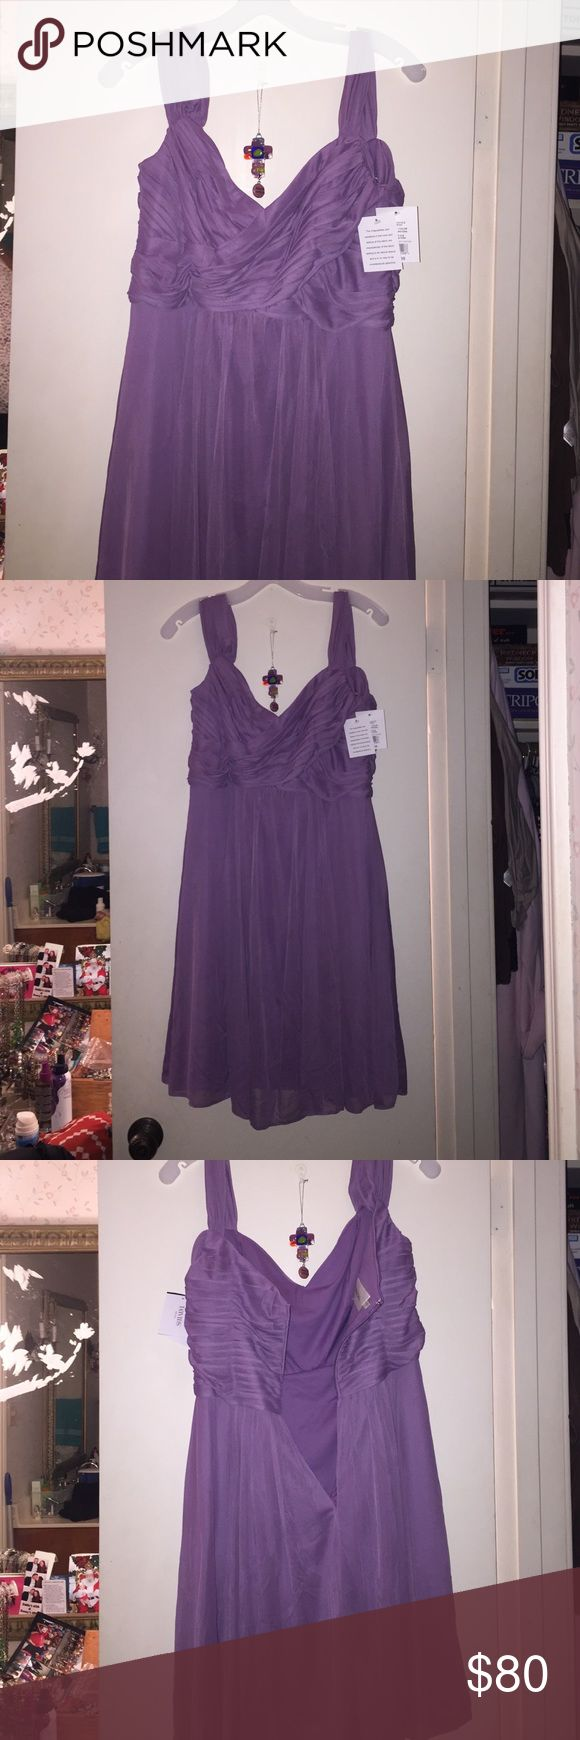 "Purple Davids Bridal short dress Purple chiffon short Davids Bridal dress. Never been worn. Cuts off at waist and flares out. Specific color is called ""Wisteria"". David's Bridal Dresses Wedding"